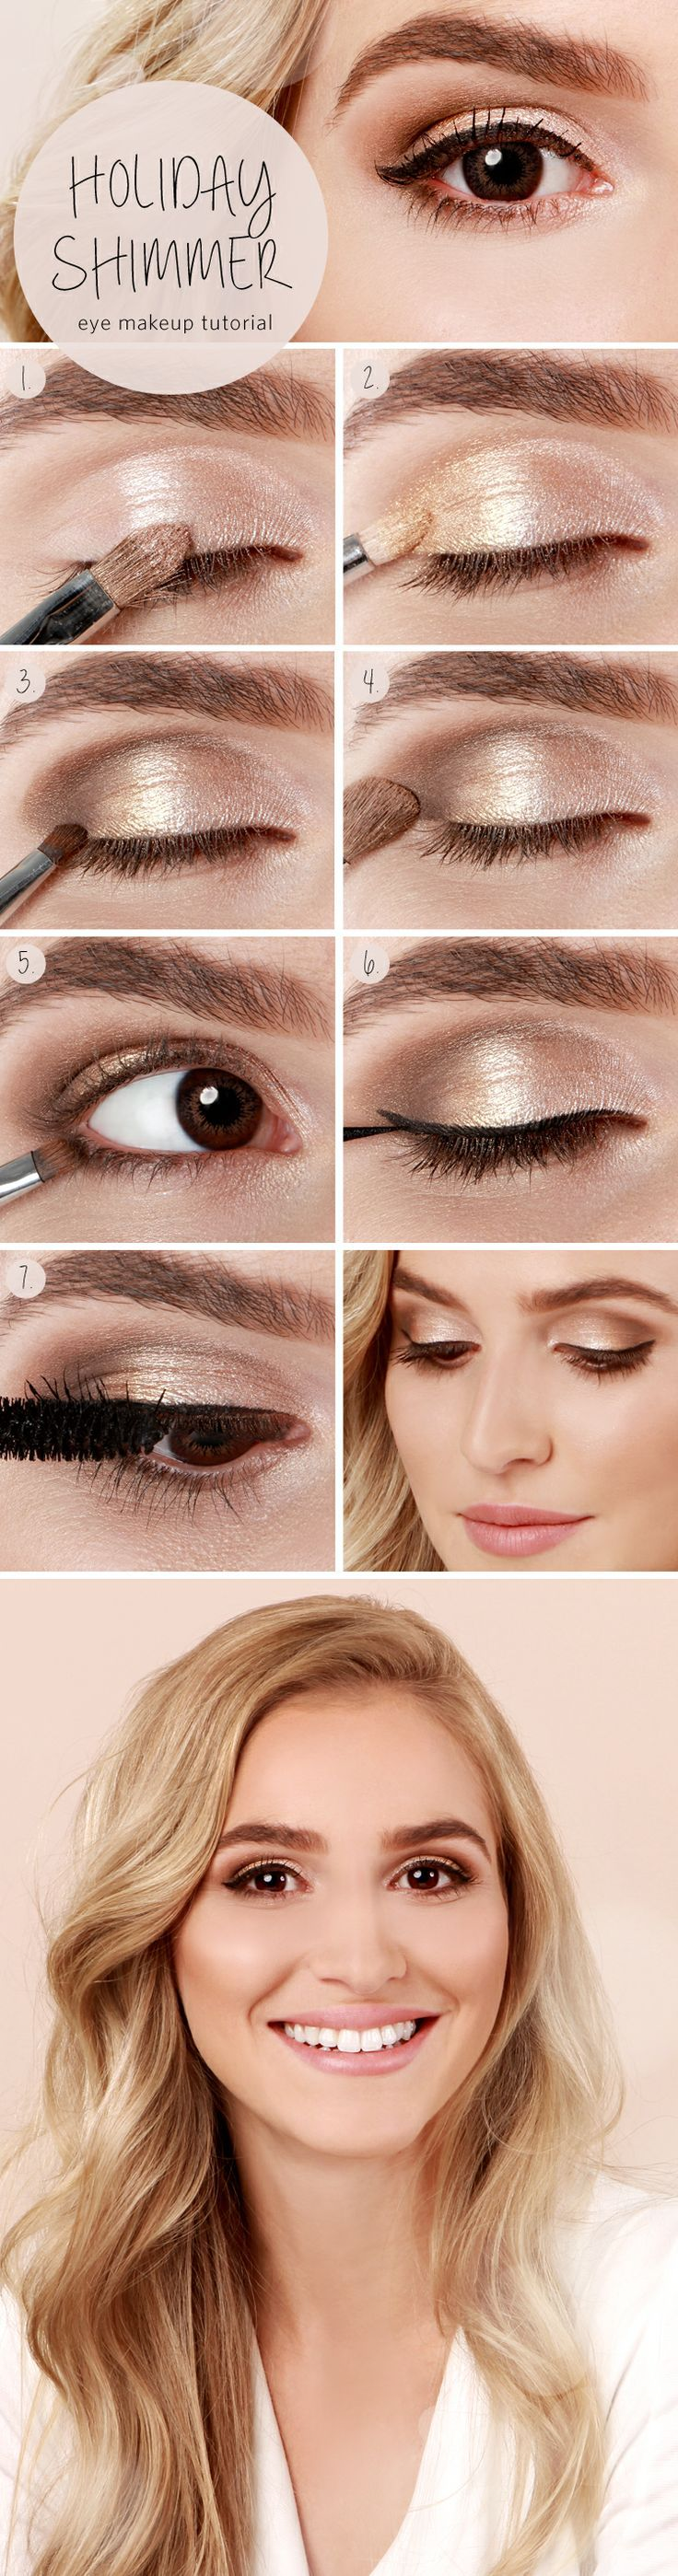 Holiday Shimmer Eye Tutorial